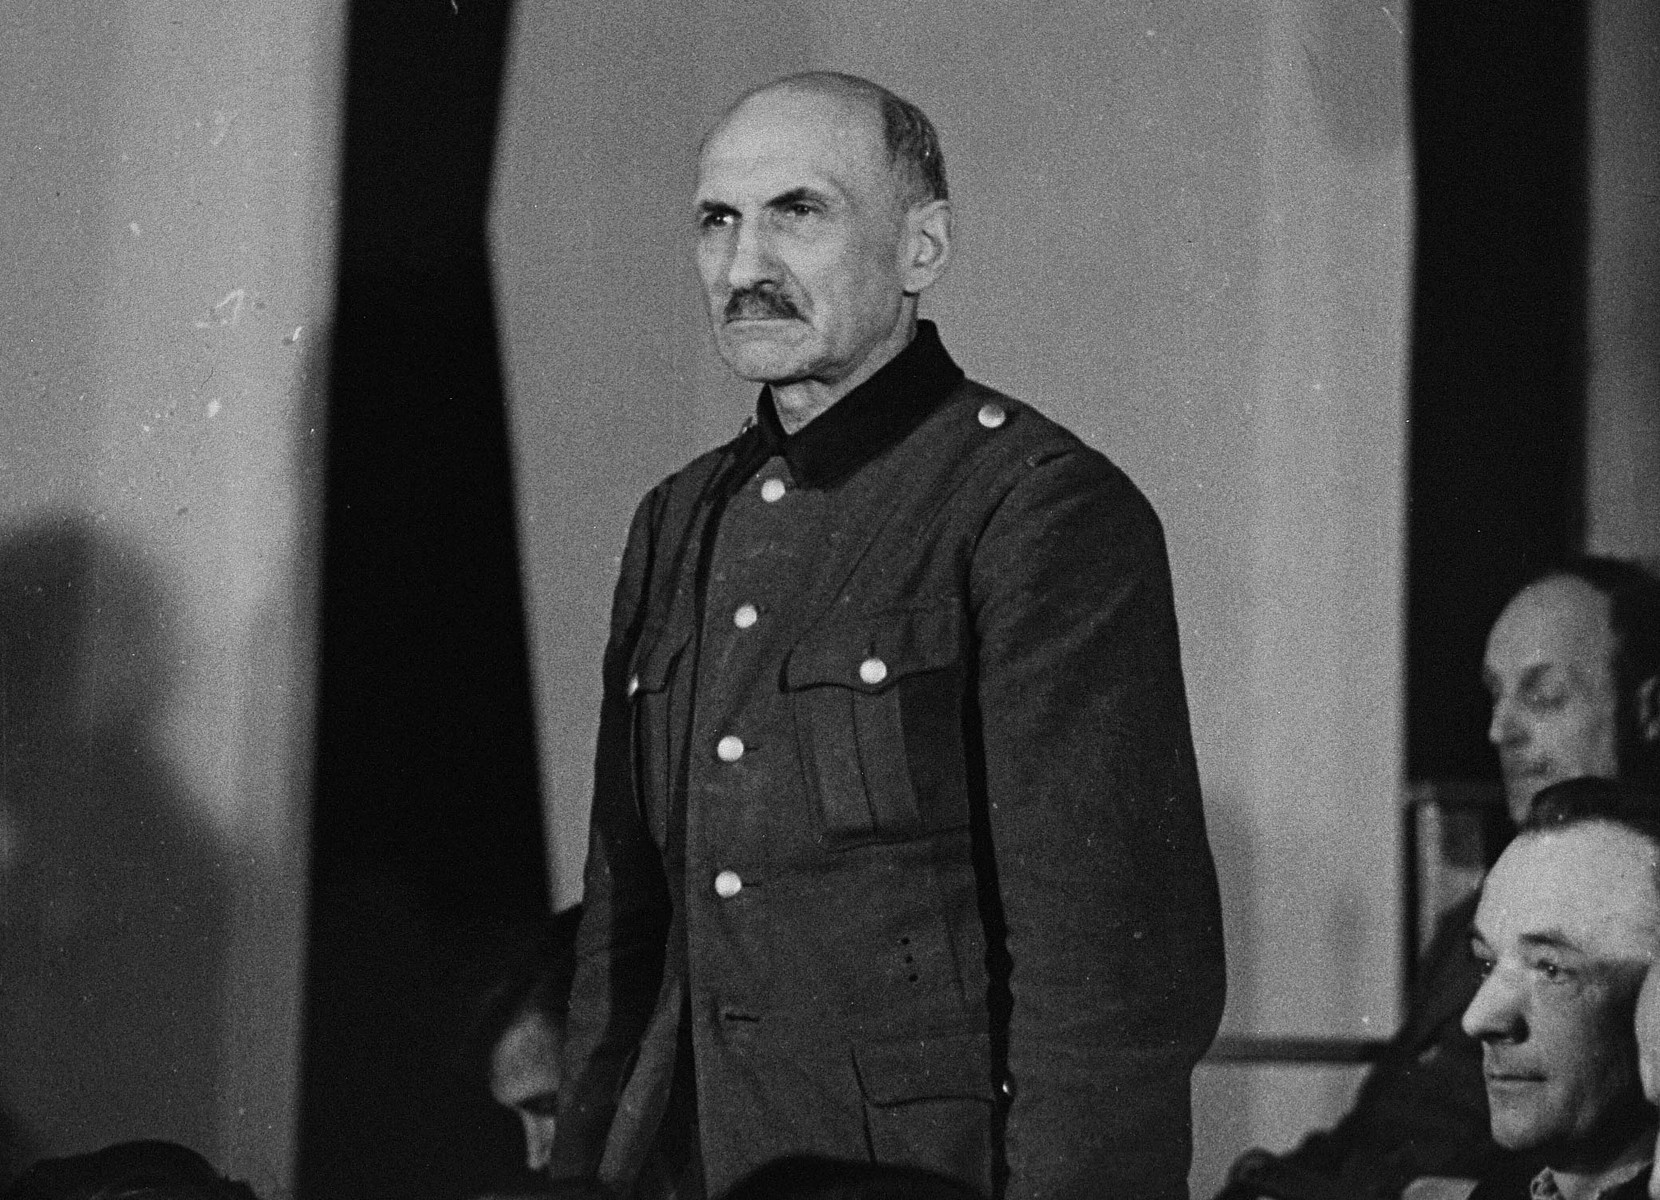 Werner Grahn, a defendant at the trial of 61 former camp personnel and prisoners from Mauthausen, stands in his place in the defendants' dock.